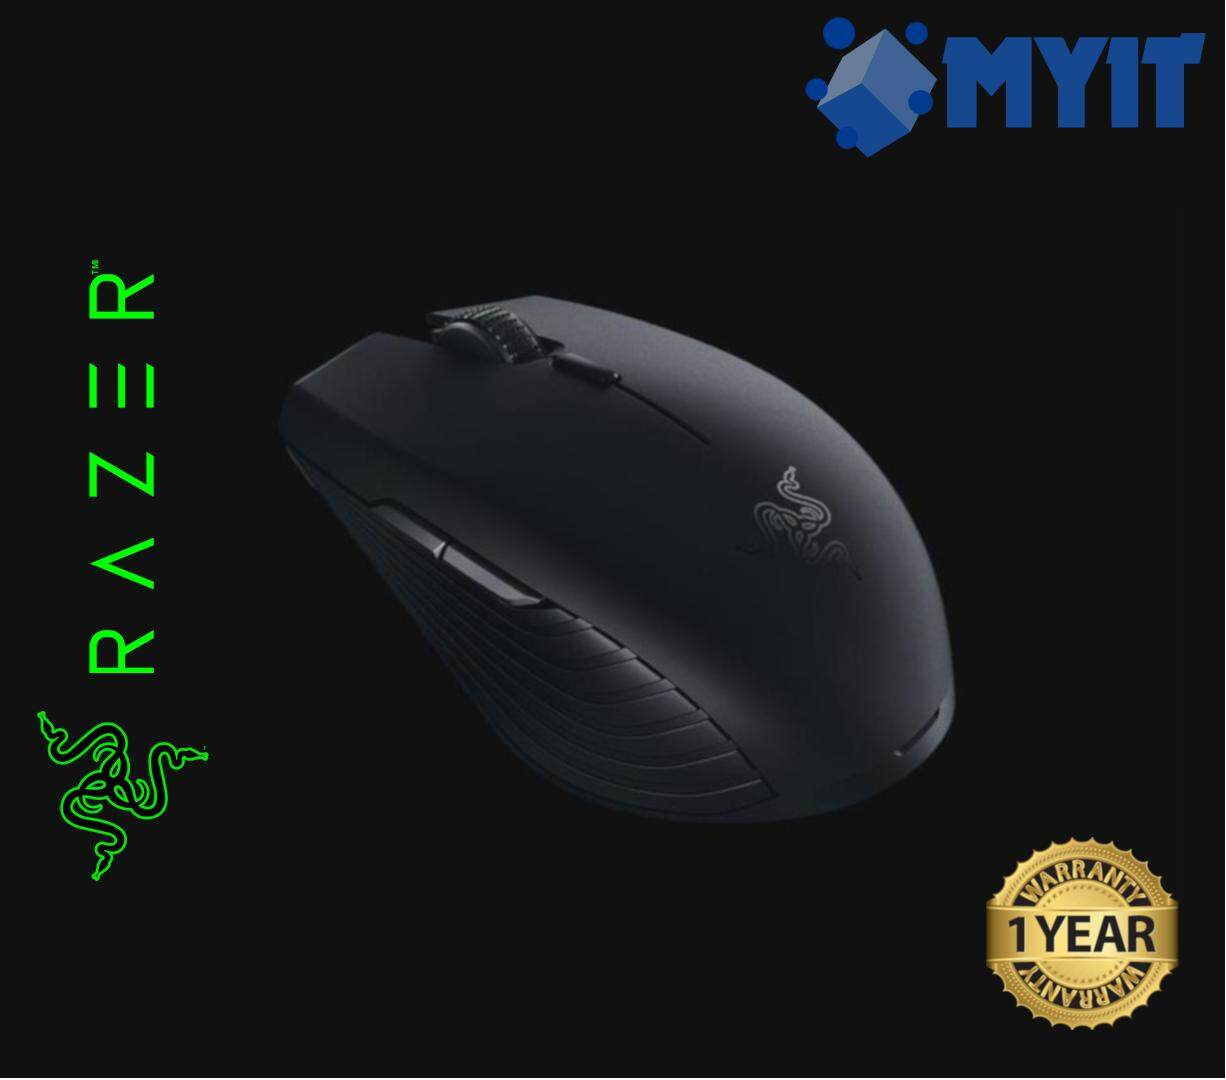 Razer Original Atheris Mobile Compact Wireless Gaming Optical Mouse 7200dpi 220 IPS 30 G Bluetooth / 2.4GHz USB Dongle Receiver Duality (99.7 x 62.8 x 34.1 mm , 2 x AA Battery)